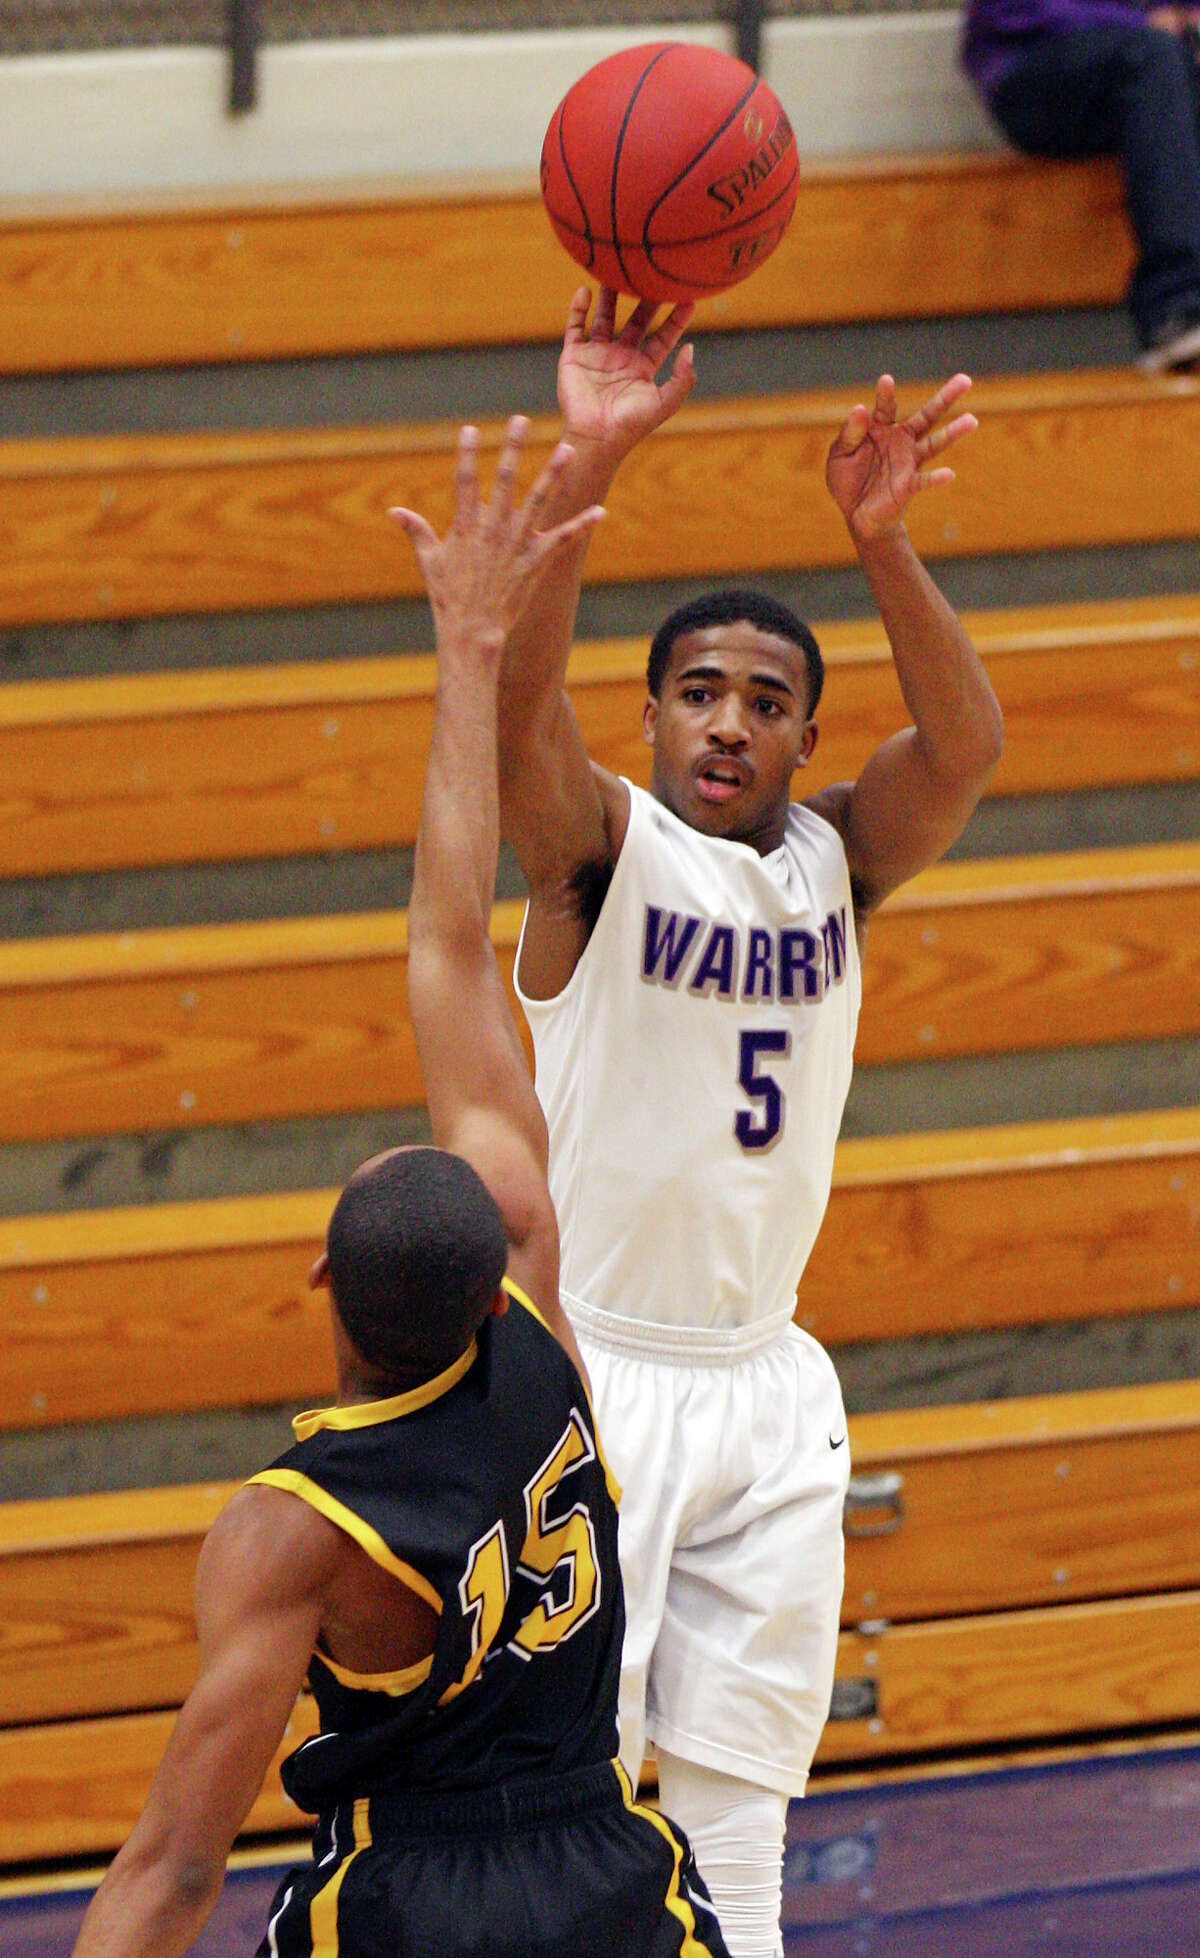 Warren's Marcus Keene shoots over Brennan's Dave Holdipp during first half action Monday Nov. 12, 2012 at Paul Taylor Field House.